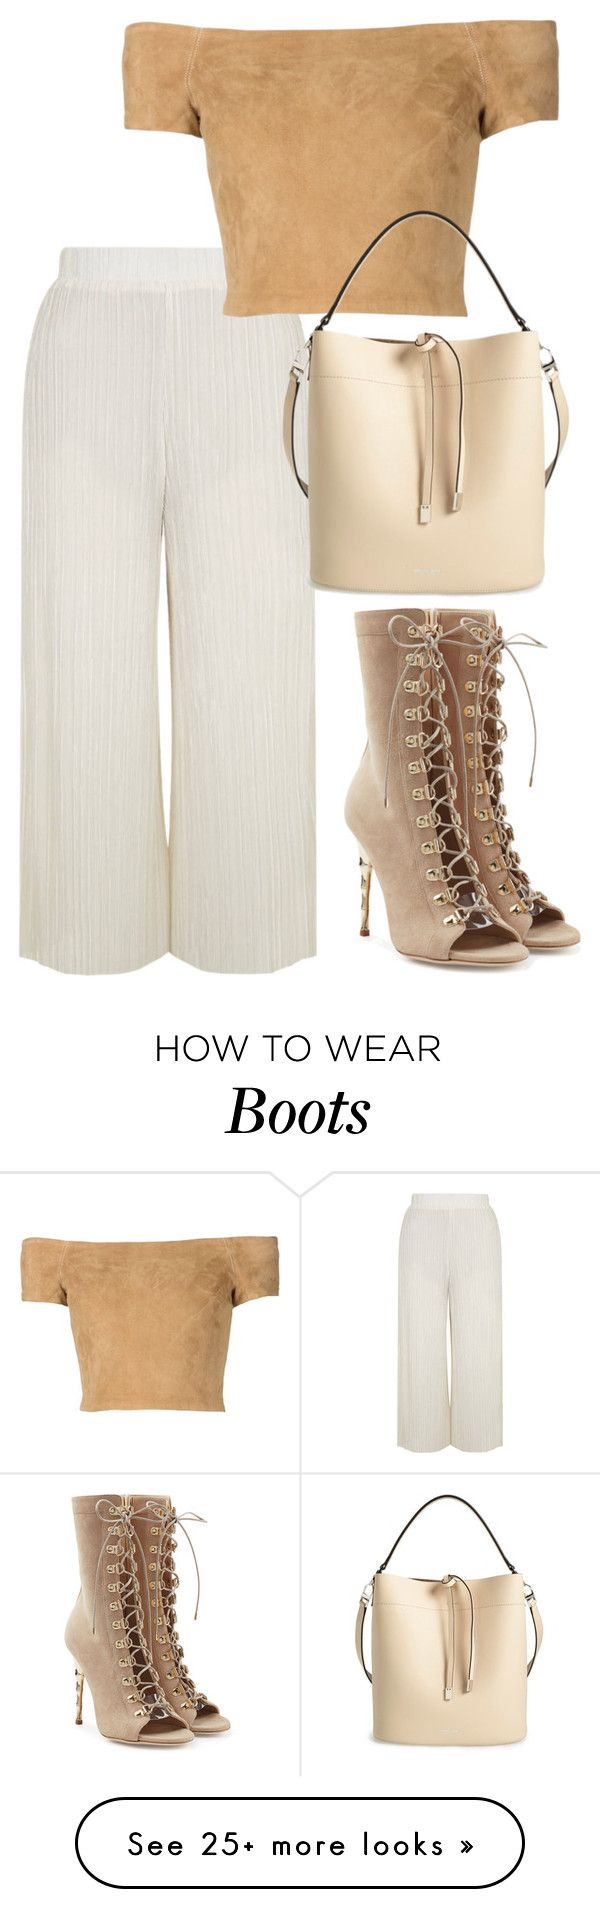 """""""Untitled #3404"""" by bubbles-wardrobe on Polyvore featuring Balmain, Topshop, Alice + Olivia and Michael Kors"""